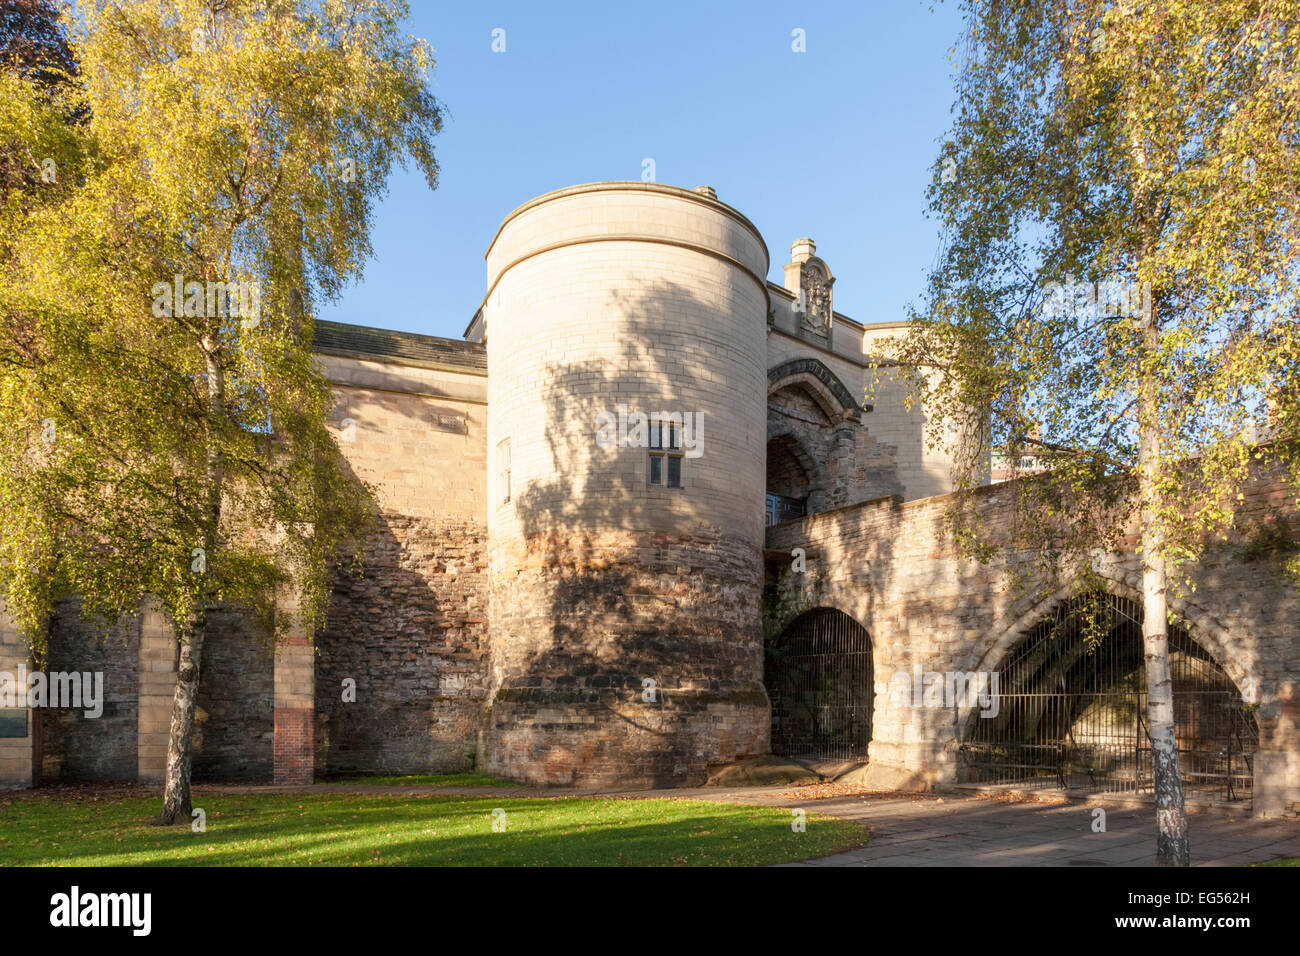 English castle: The Gate House and bridge, Nottingham Castle, Nottingham, England, UK - Stock Image